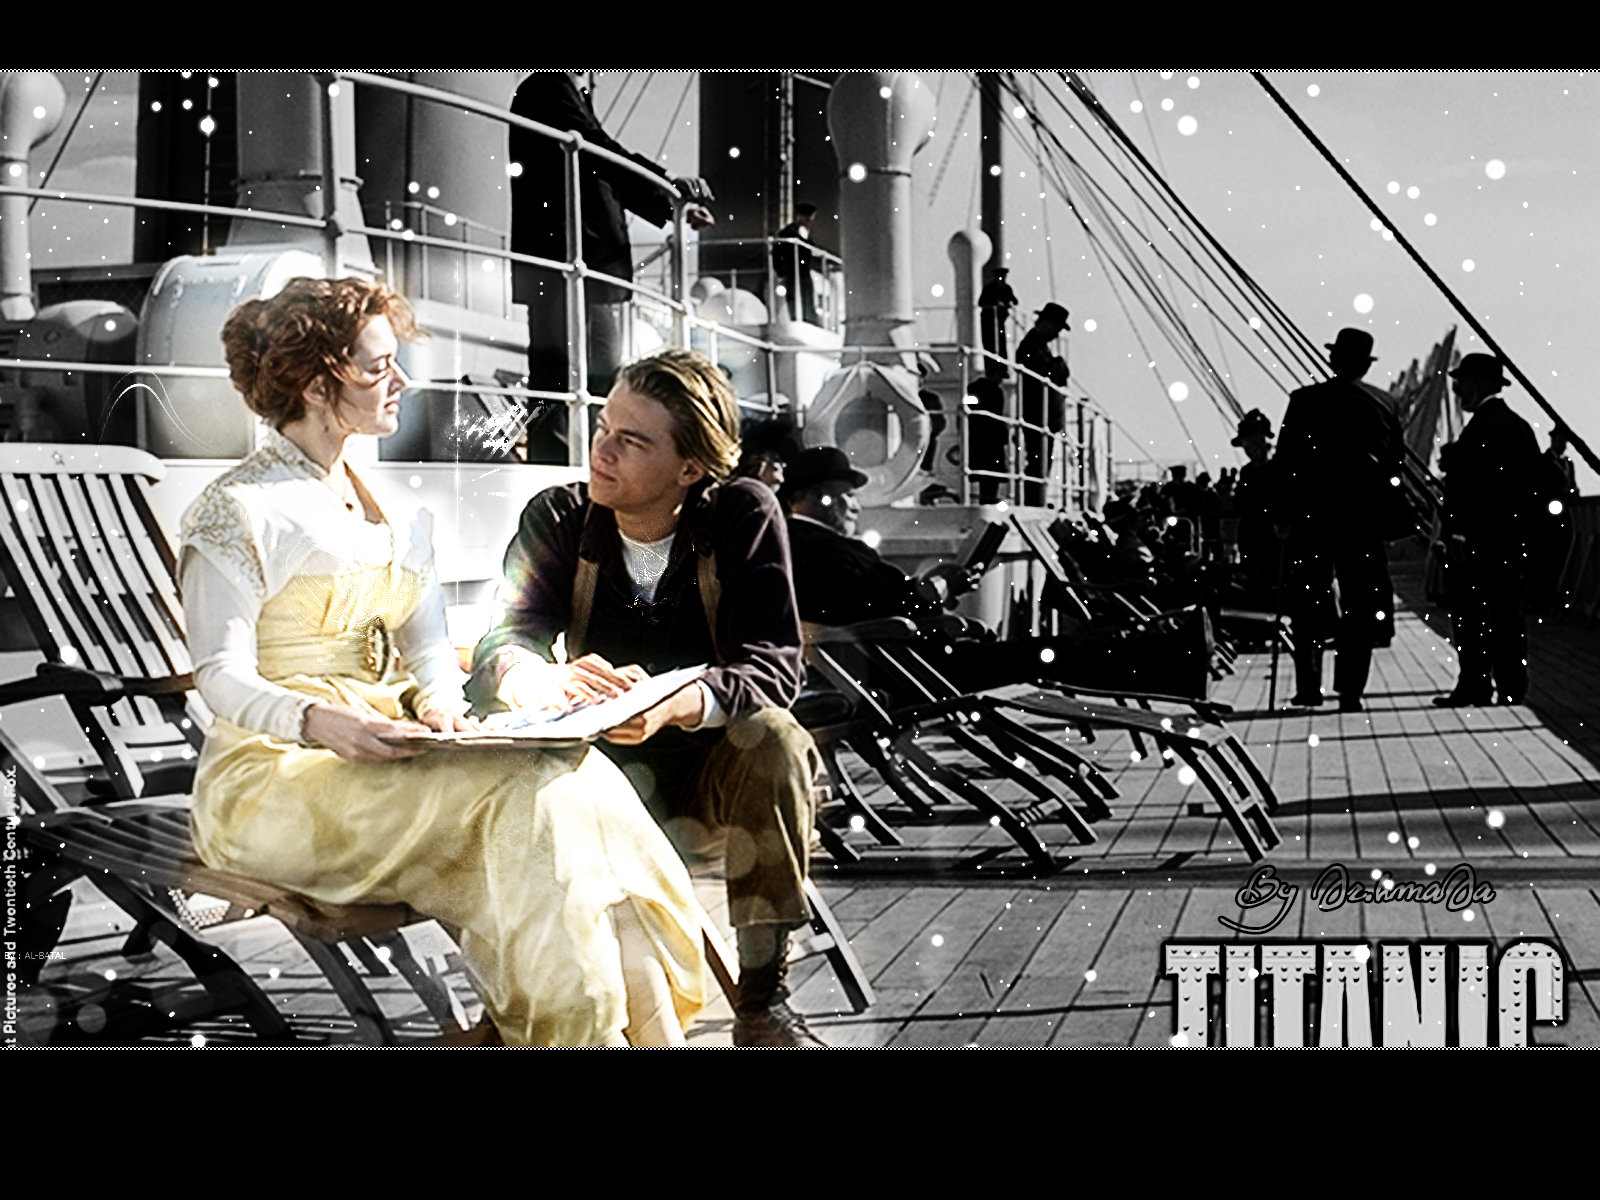 Titanic-by-Dr-maDa-wallpaper-wp4210019